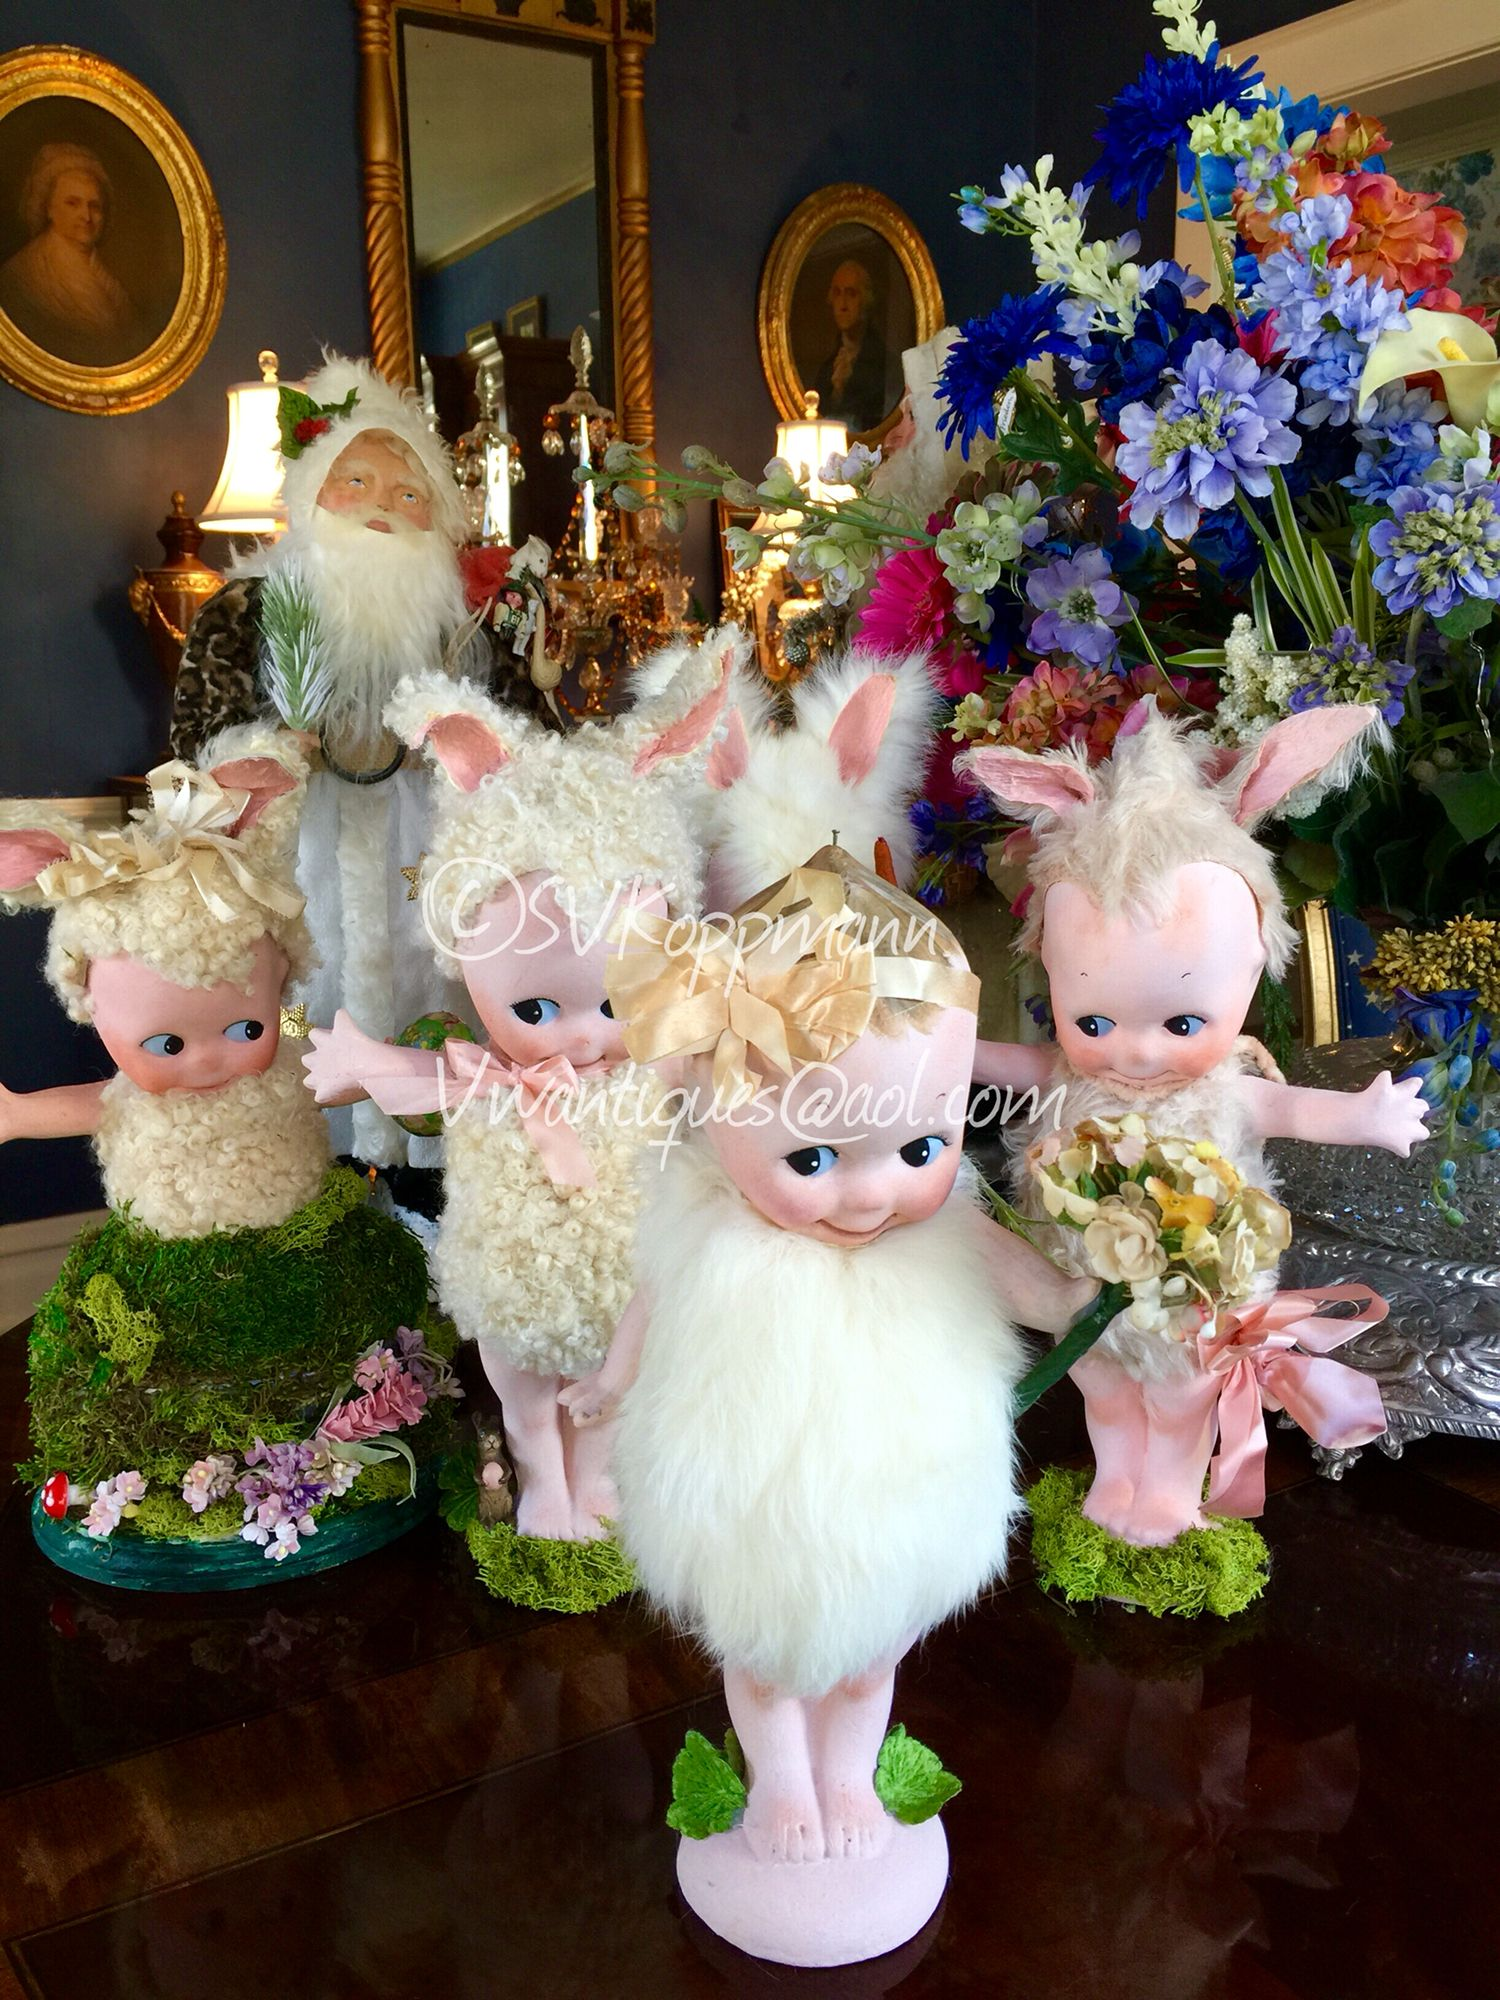 "My recent Easter creations with Kewpies! 12"" tall antique Kewpies. SVKoppmann vwantiques@aol.com"